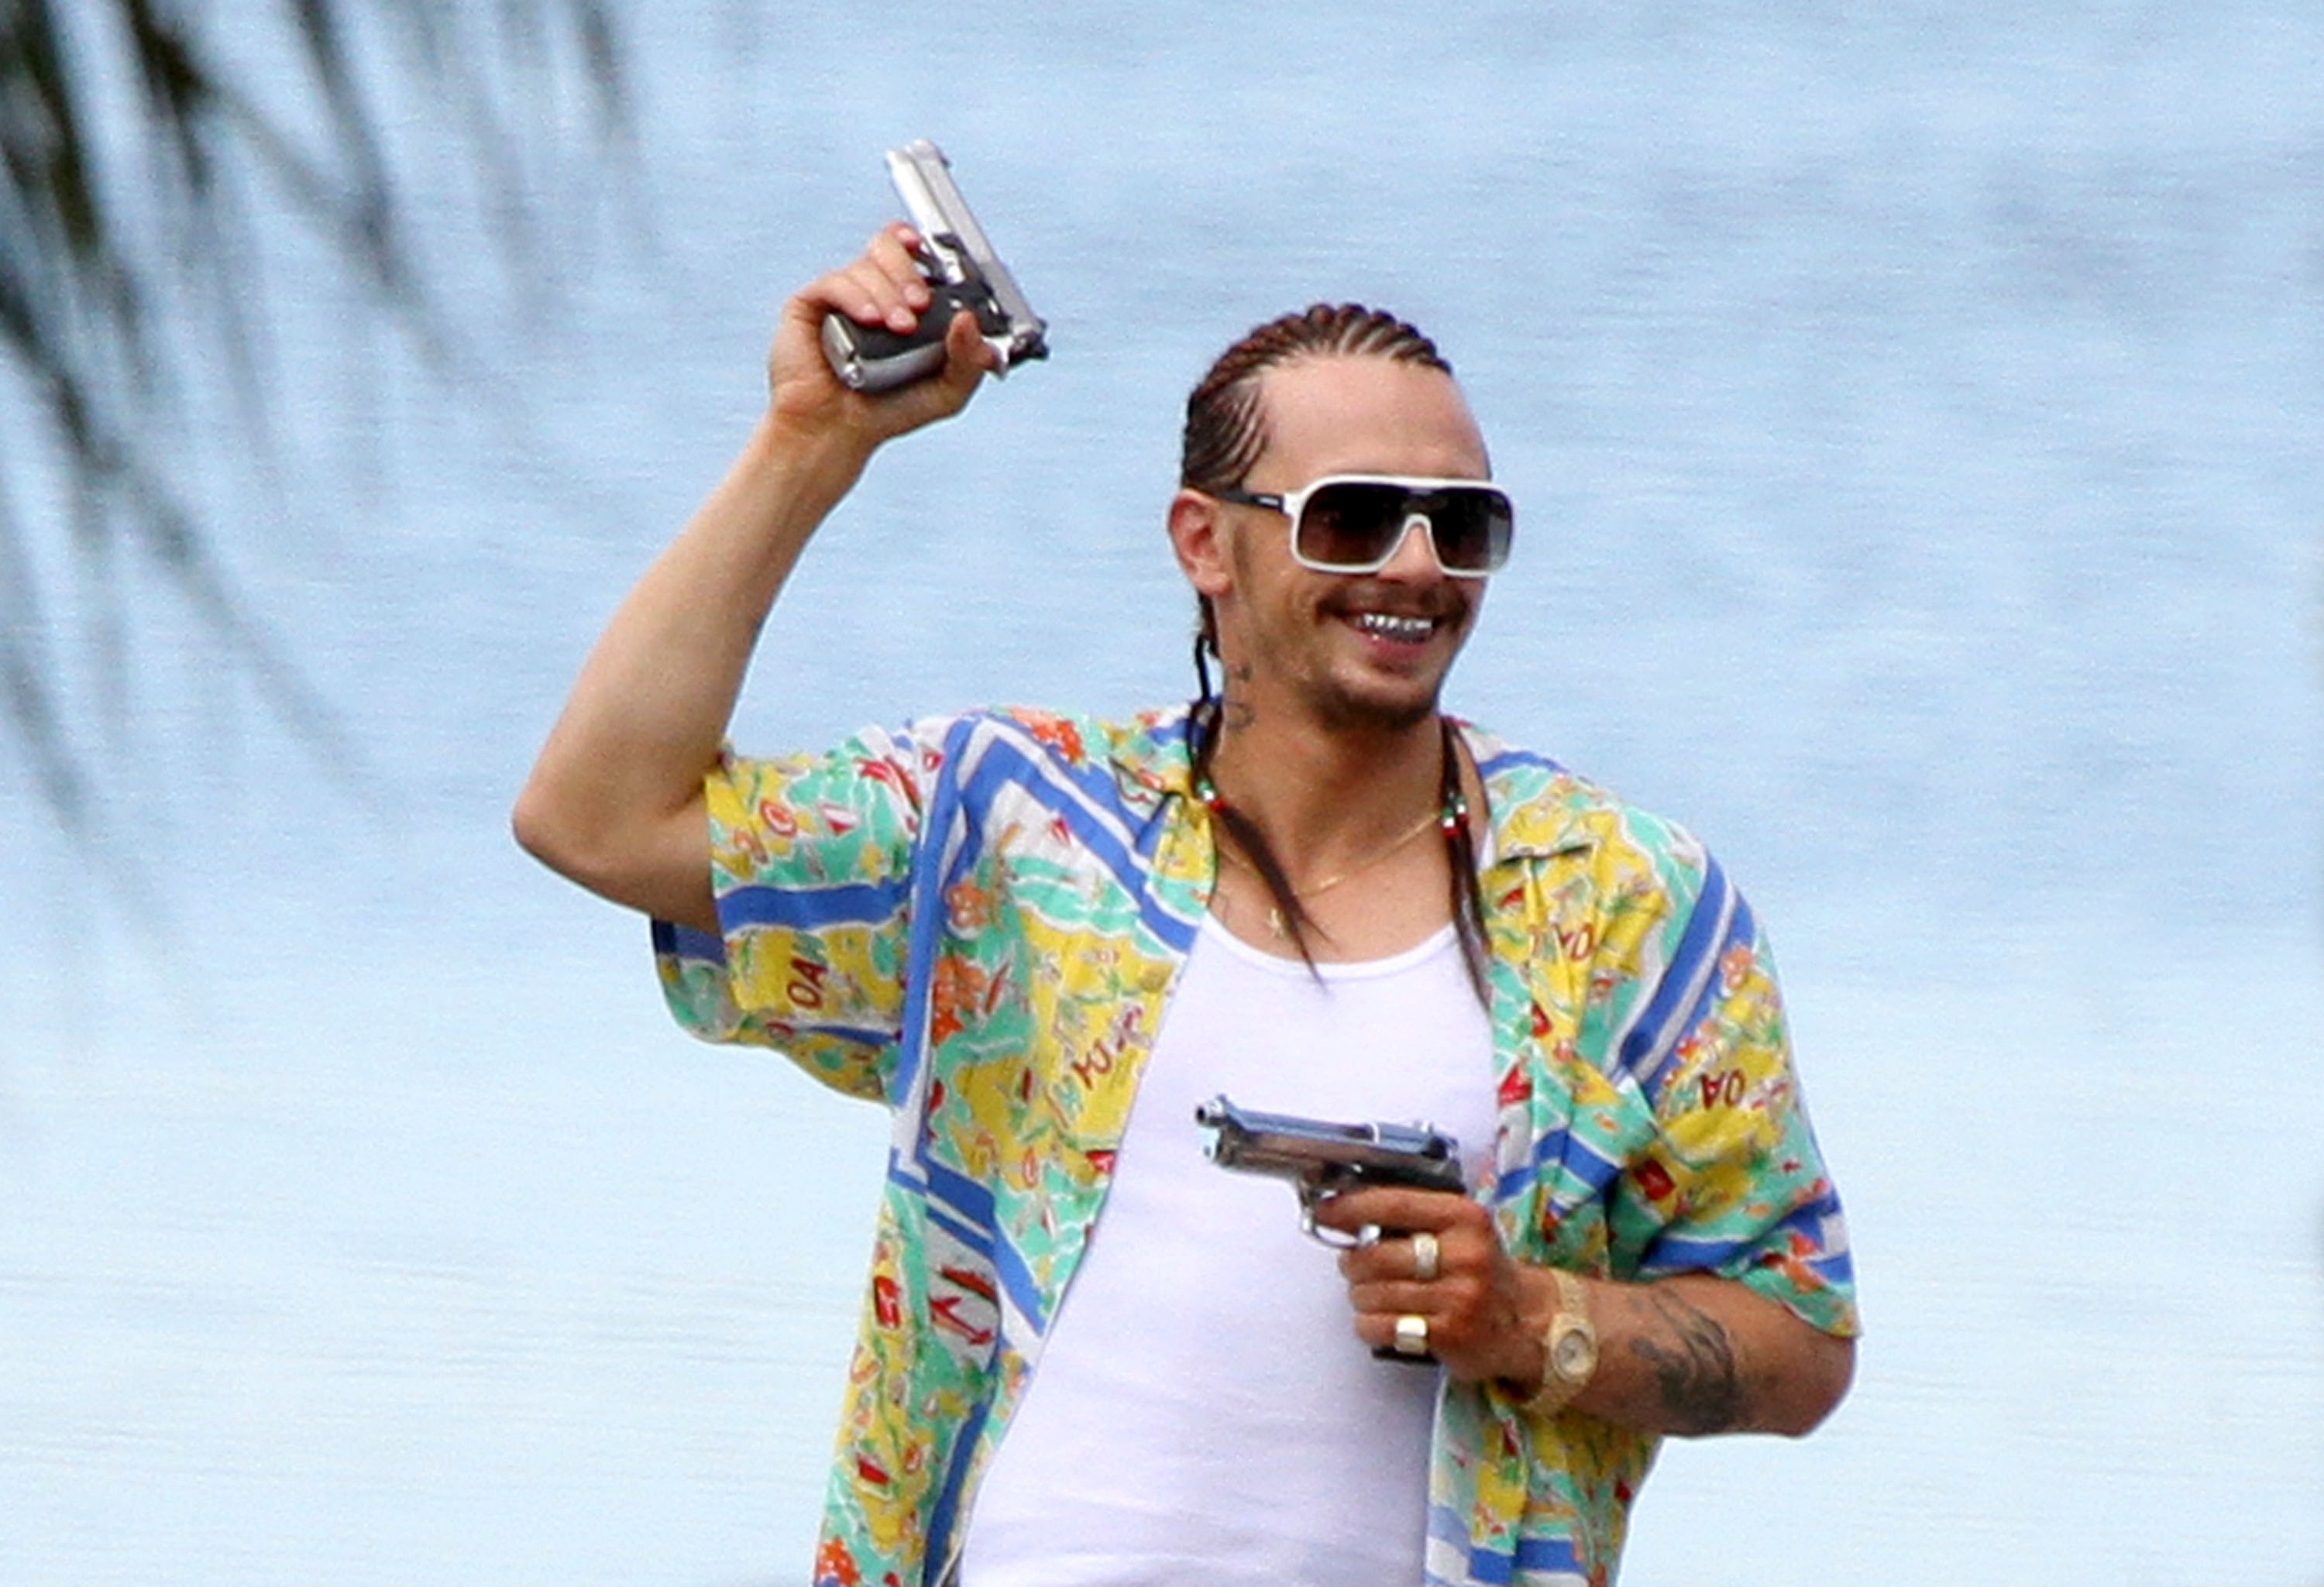 Exclusive - James Franco Resembles K-Fed As He Films Spring Breakers